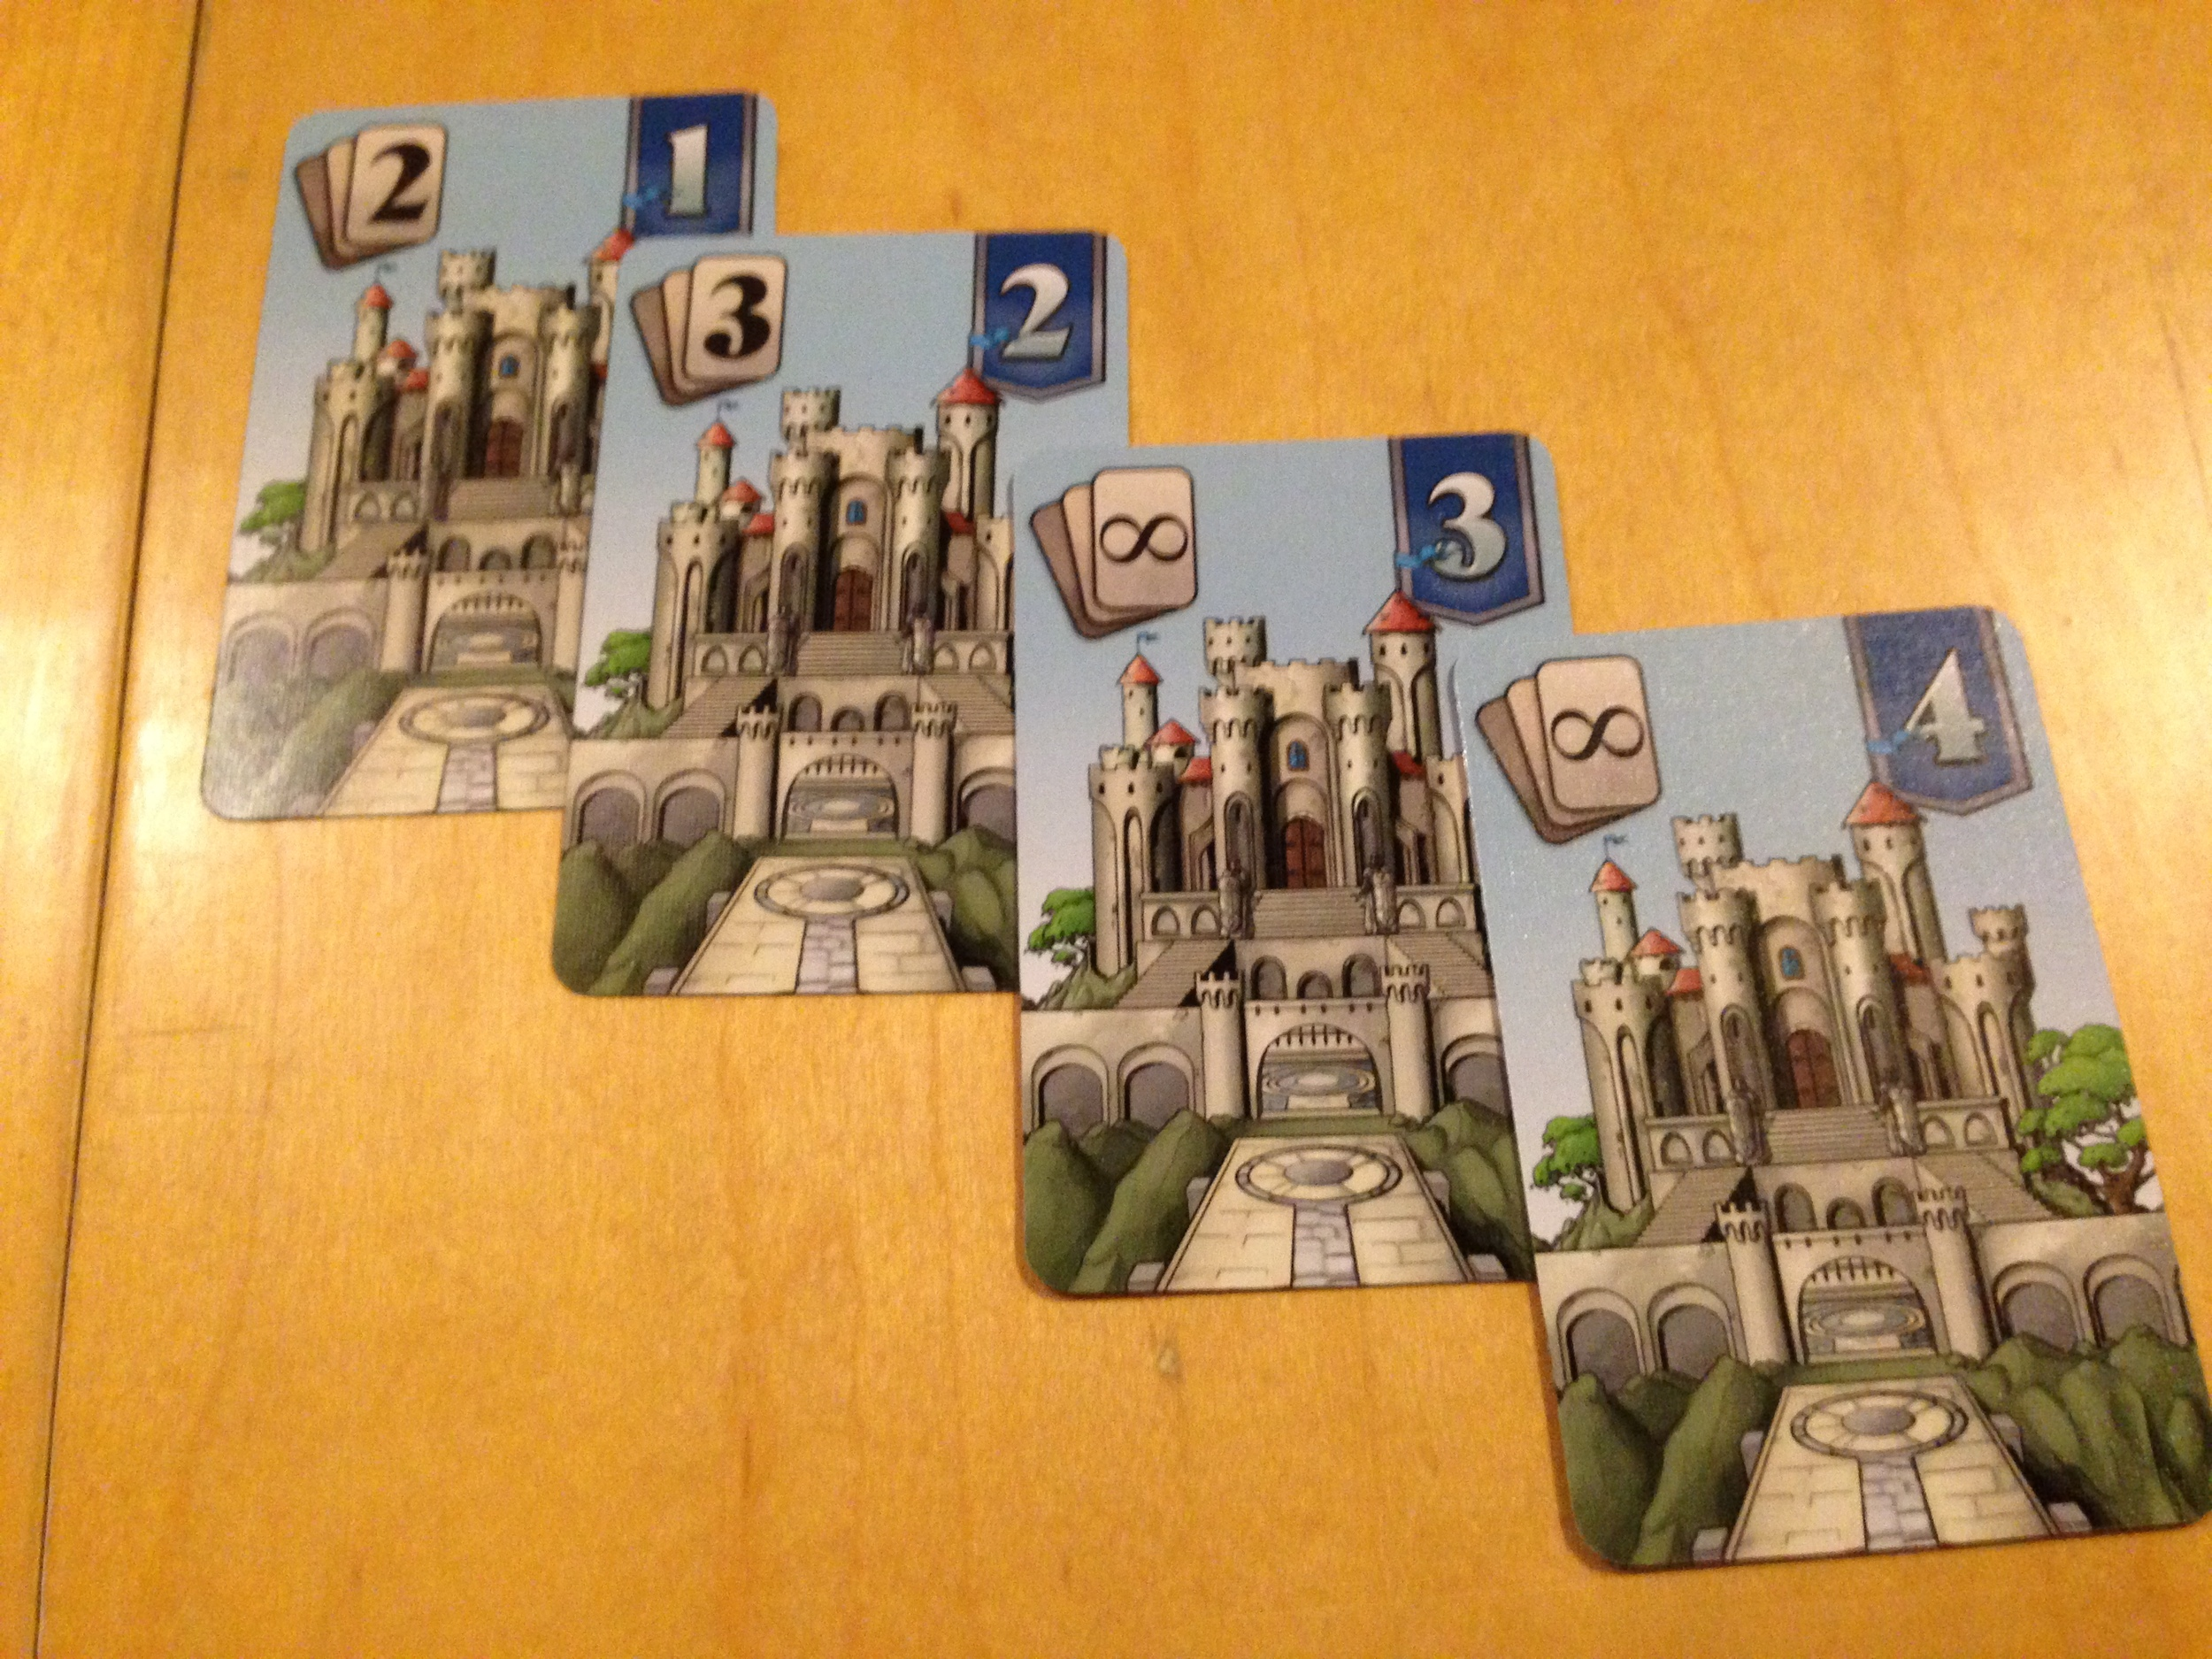 The 3 and the 4 Castle can hold any number of cards.